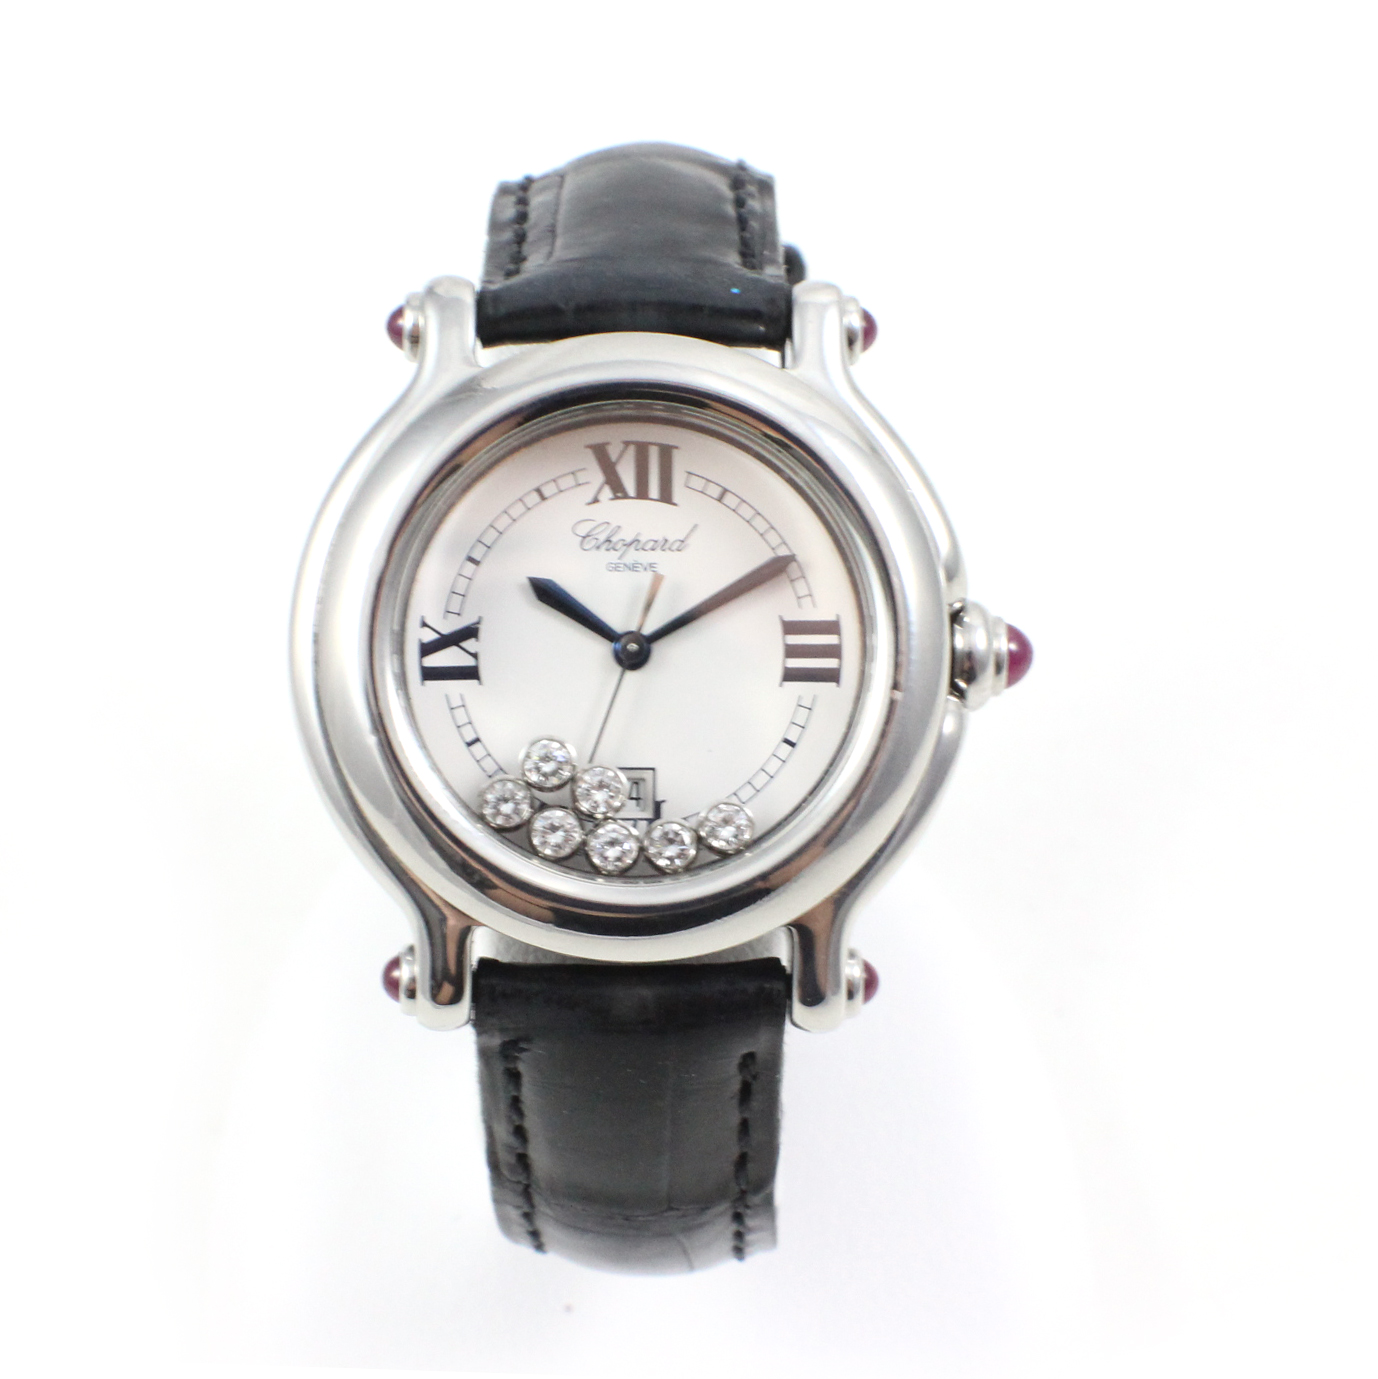 Leather-strap-chopard-fake-watches